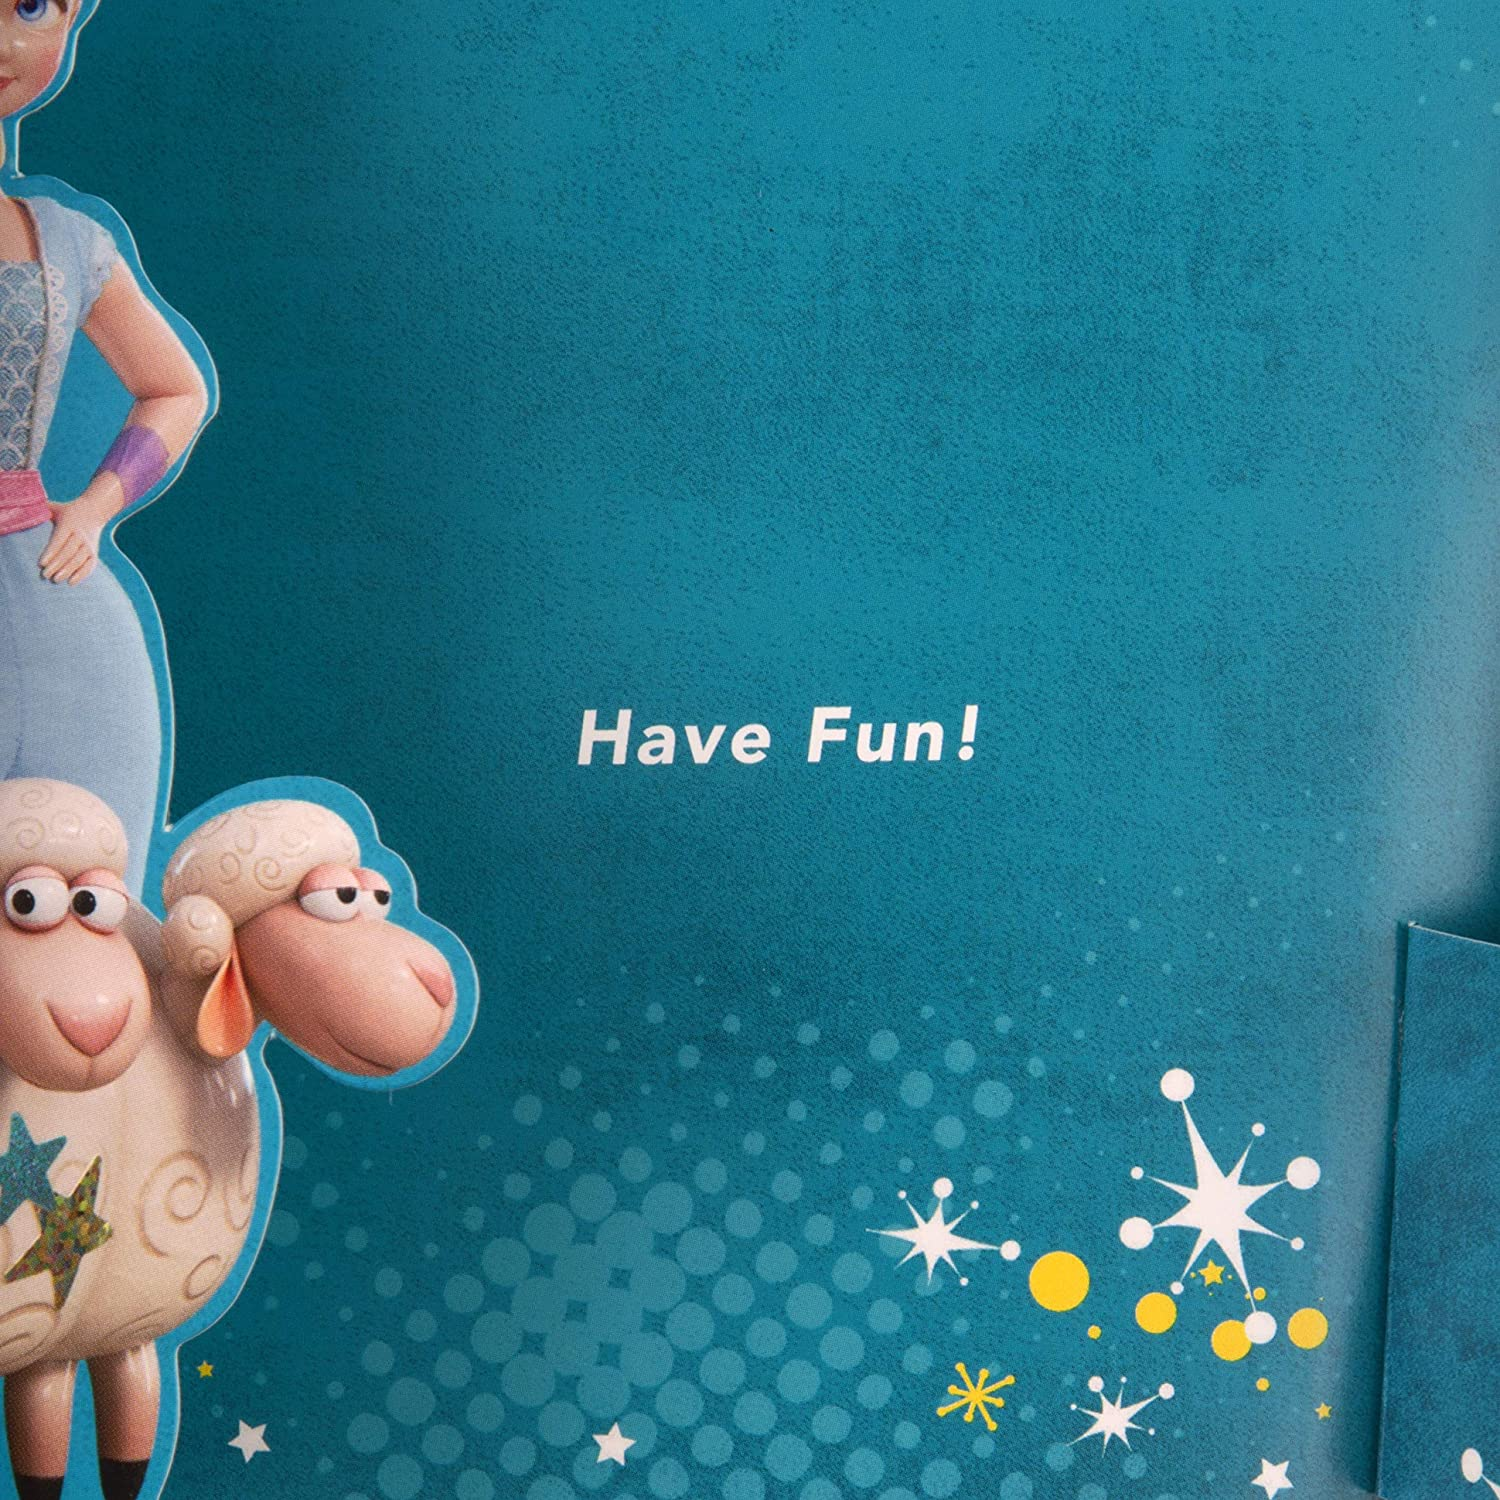 Toy Story 4 Birthday Card for Kids from Hallmark 3D Pop-Out Design